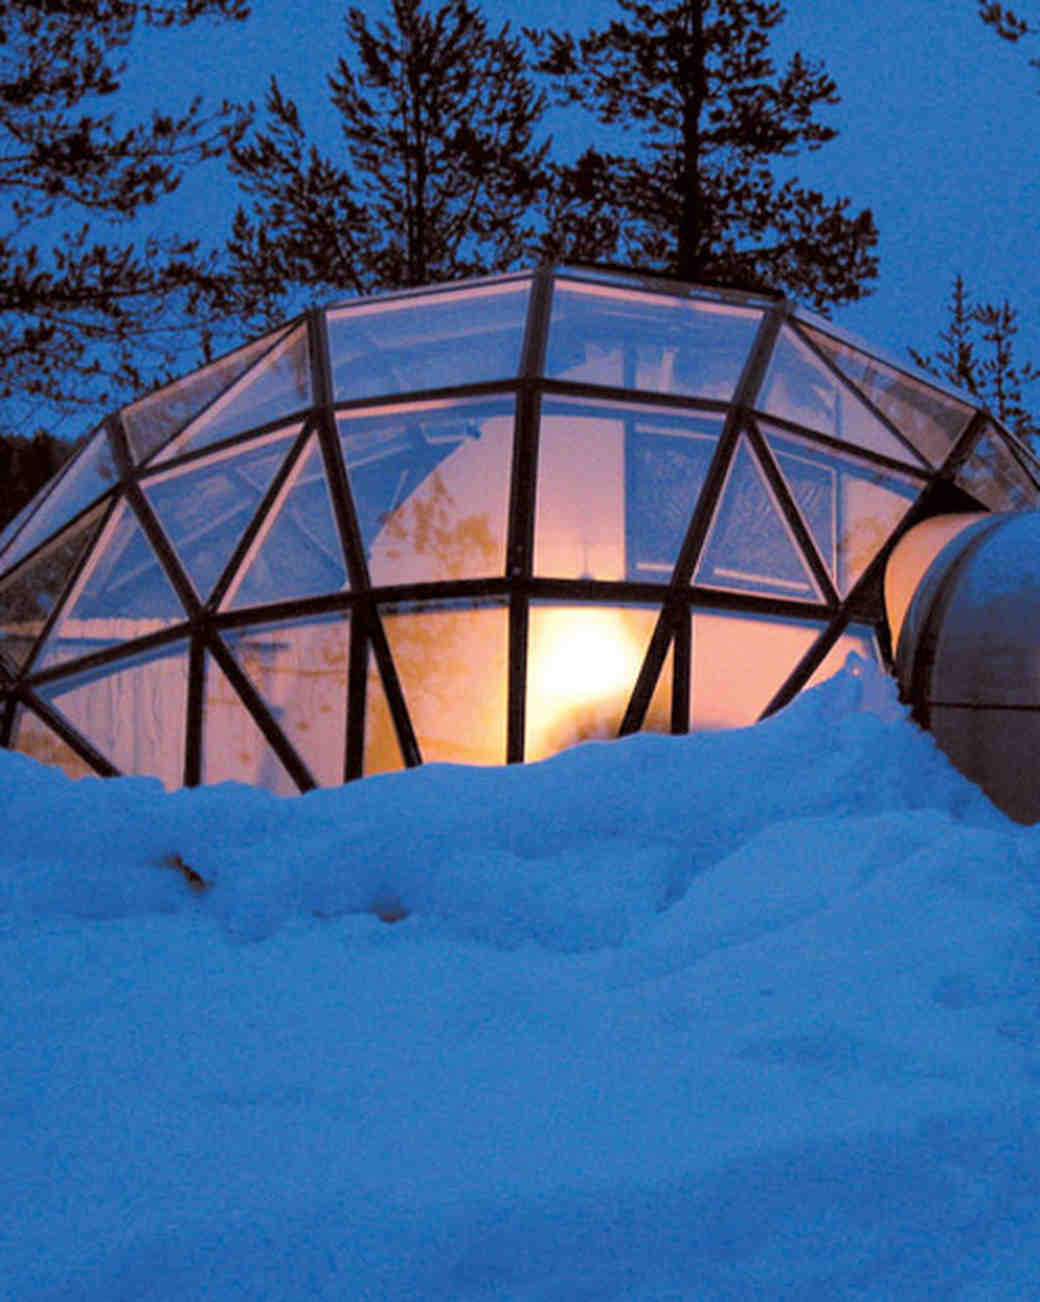 wds106403_sipl10_kak_hq_winter_glass_igloo2.jpg